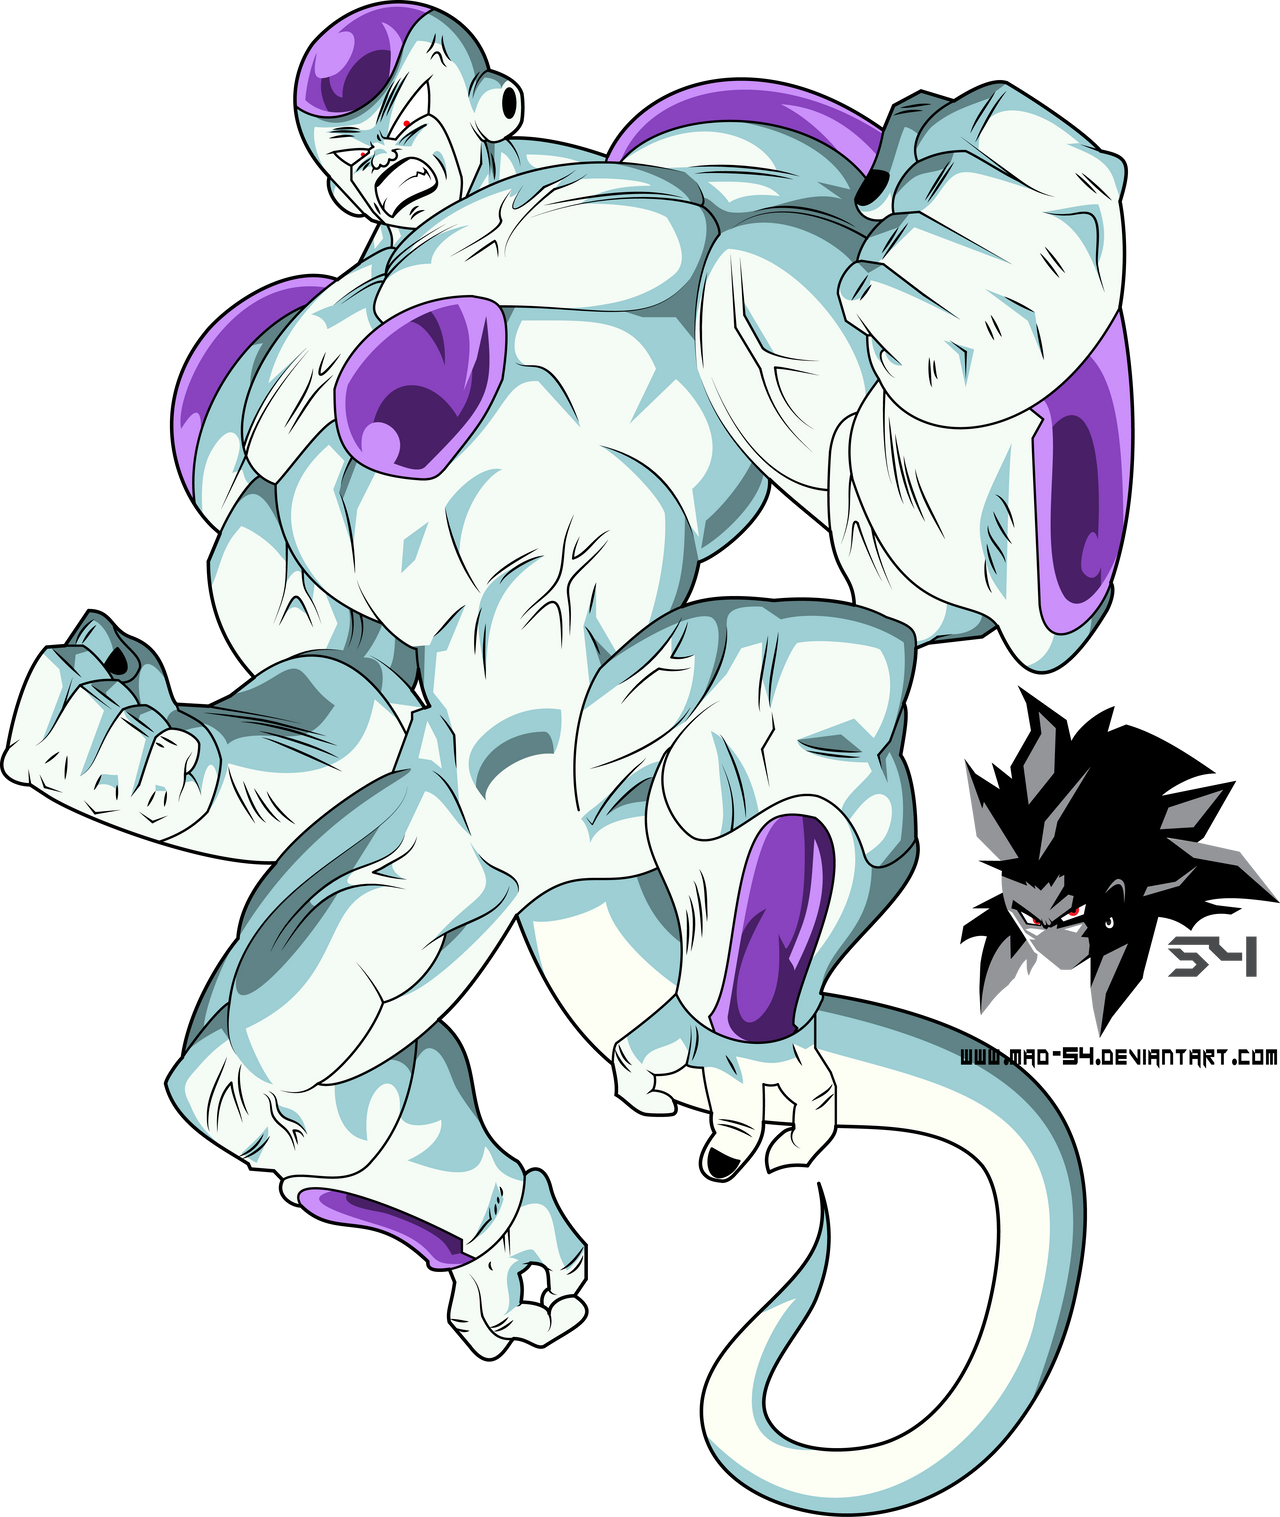 Final Form Frieza 100% Full Power by MAD-54 on DeviantArt